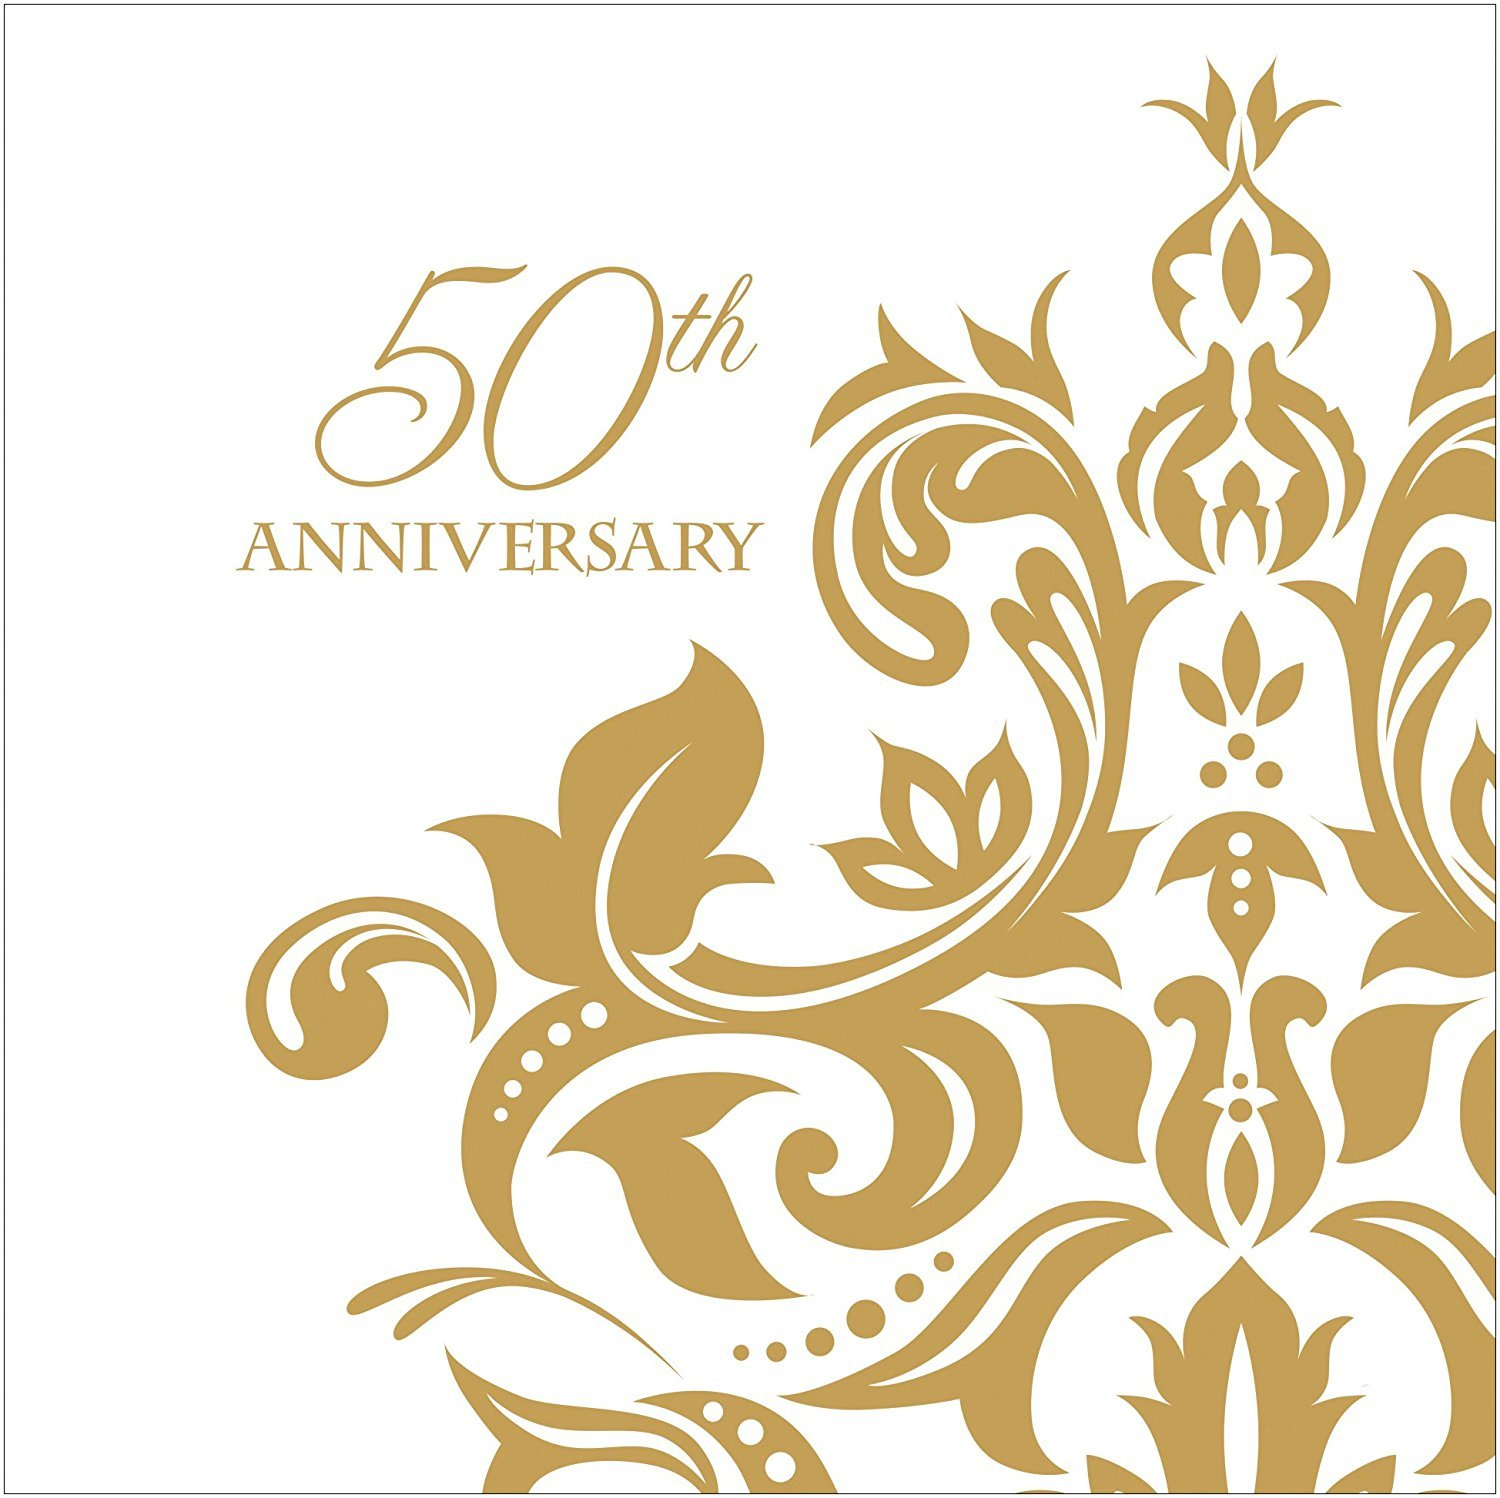 100 Count 3 Ply 50th Anniversary Napkins Wedding Party Favors Supplies Decorations White & Golden Beverage Napkin